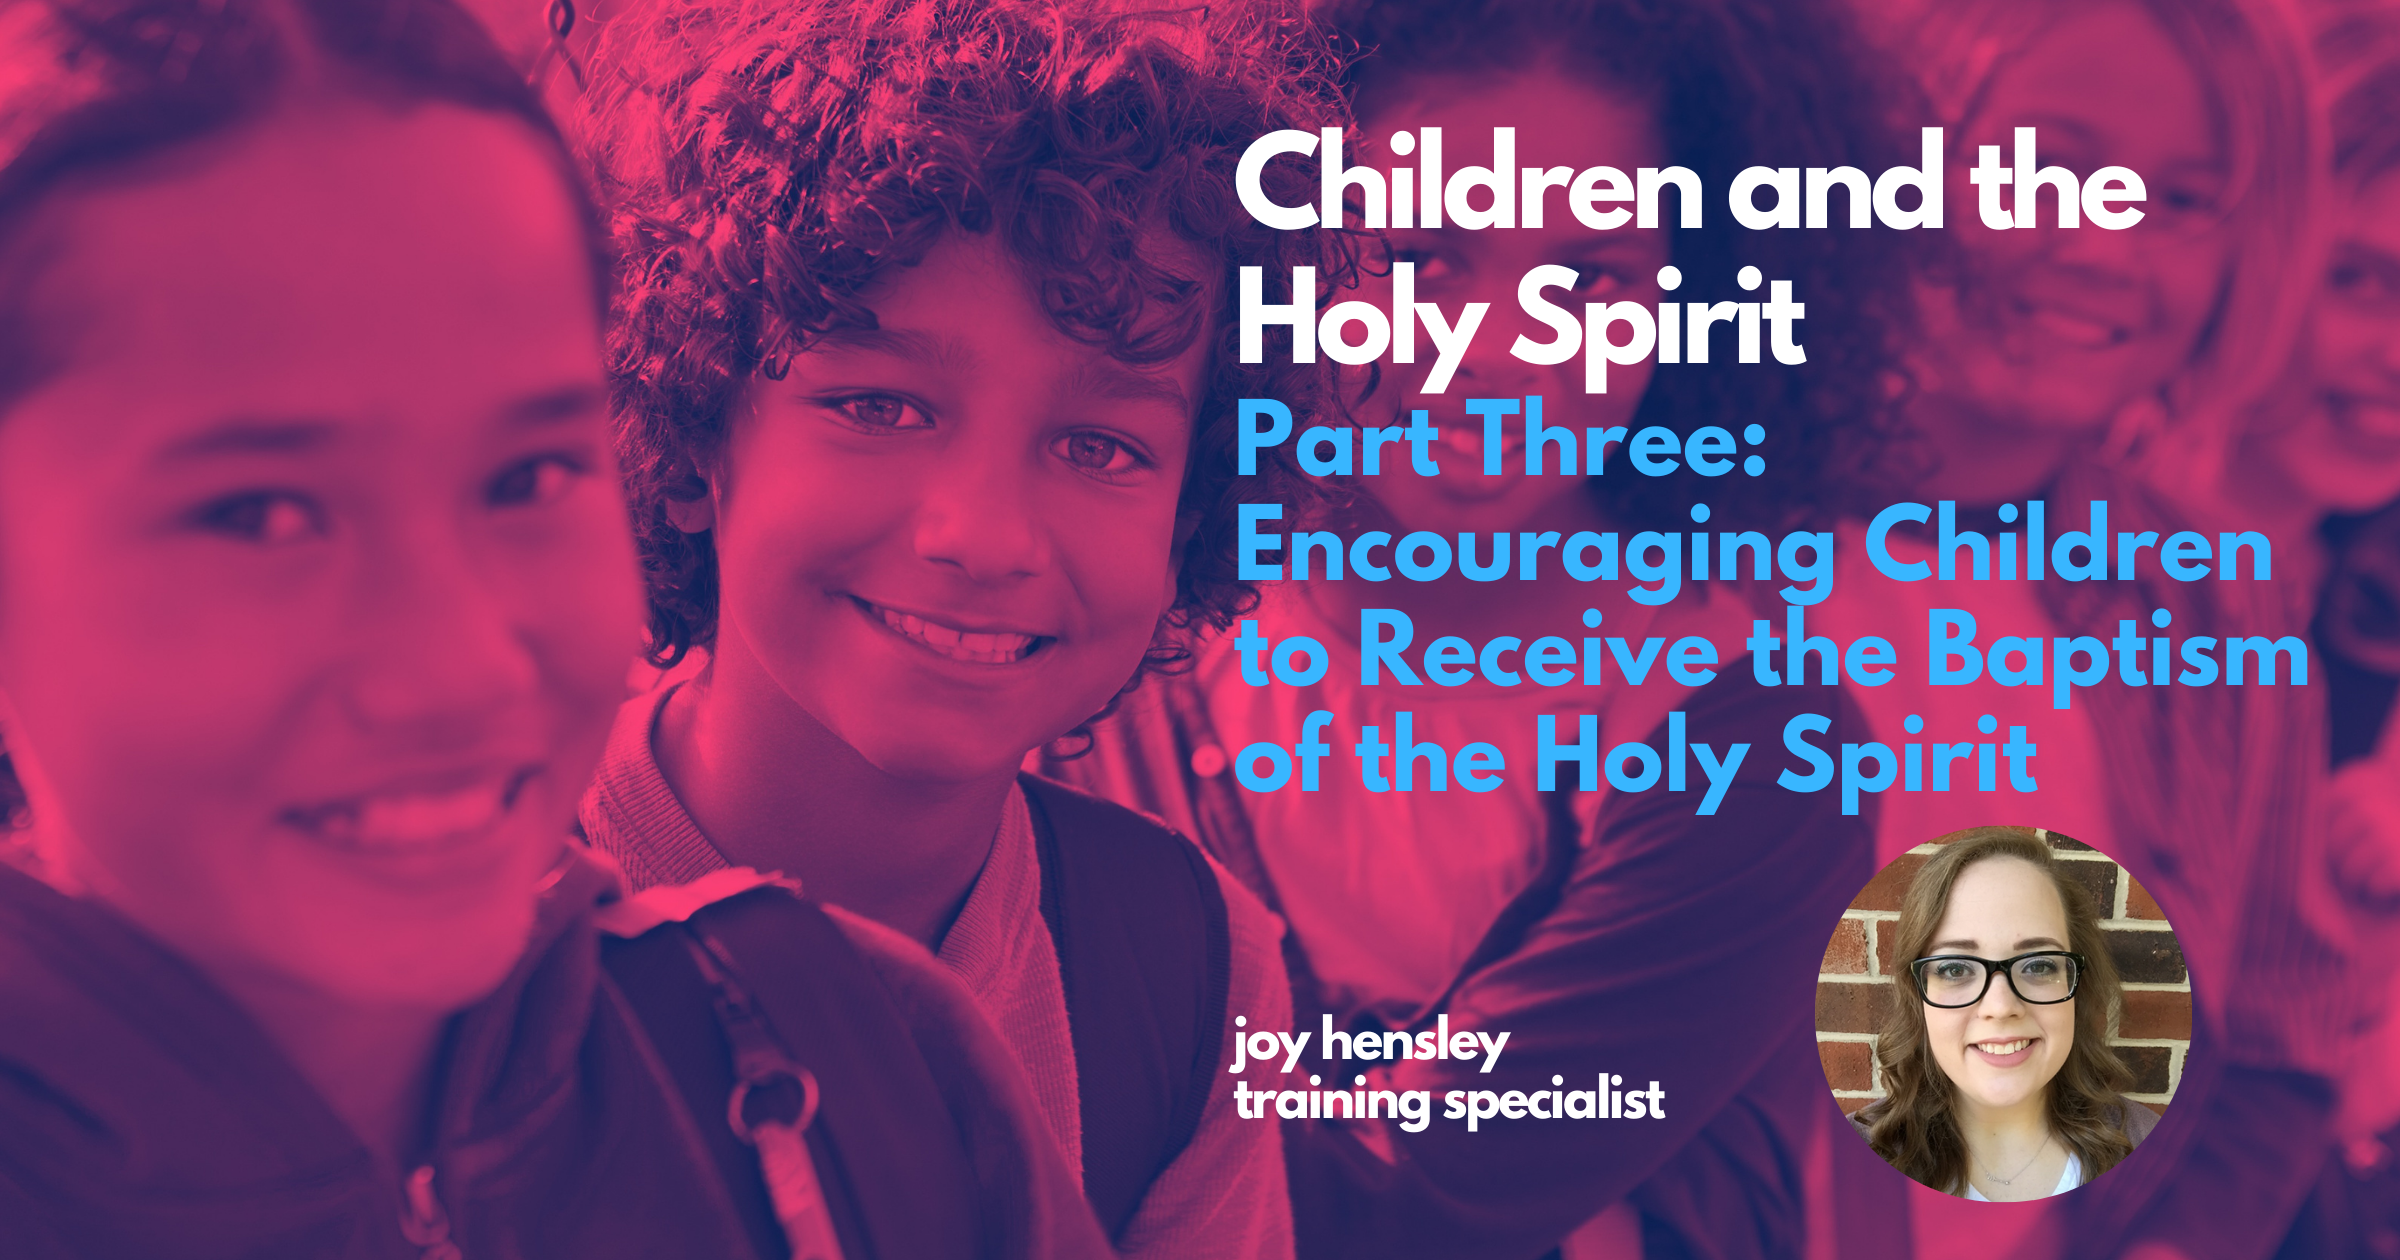 Encouraging Children to Receive the Baptism of the Holy Spirit Contributor